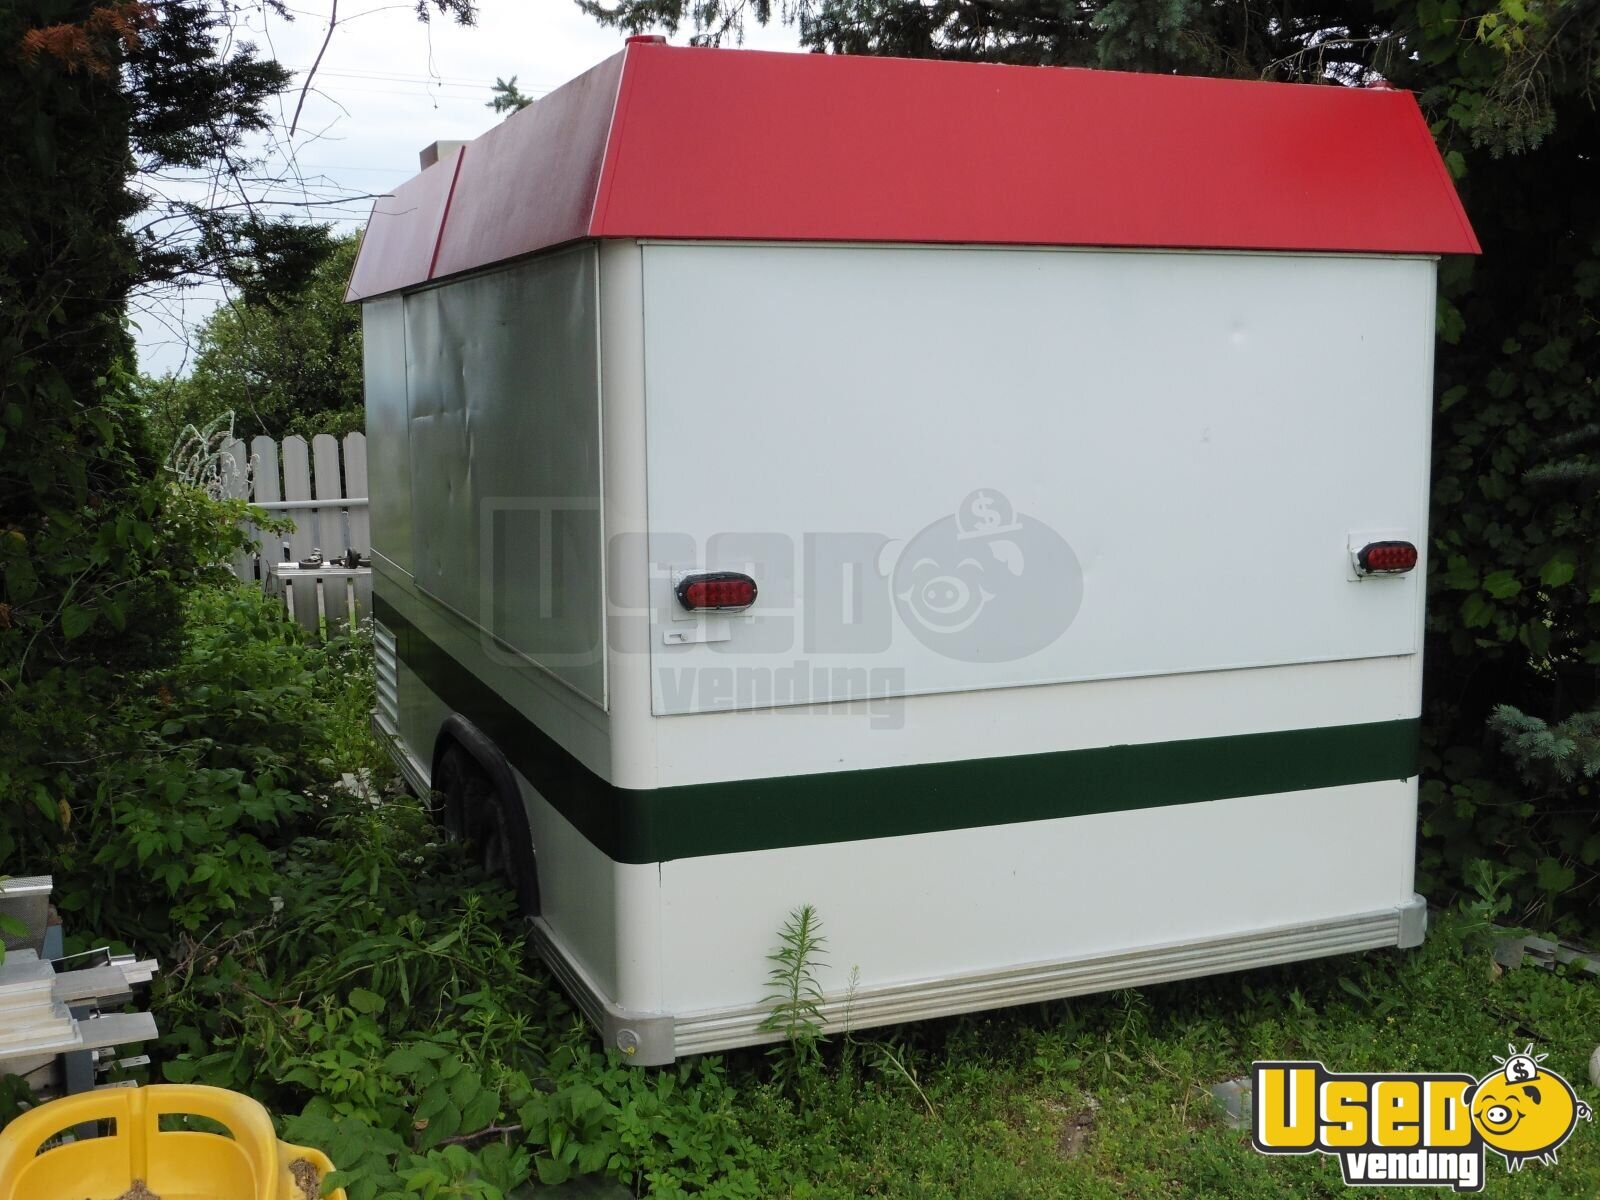 1999 Century All-purpose Food Trailer Concession Window Vermont for Sale - 2